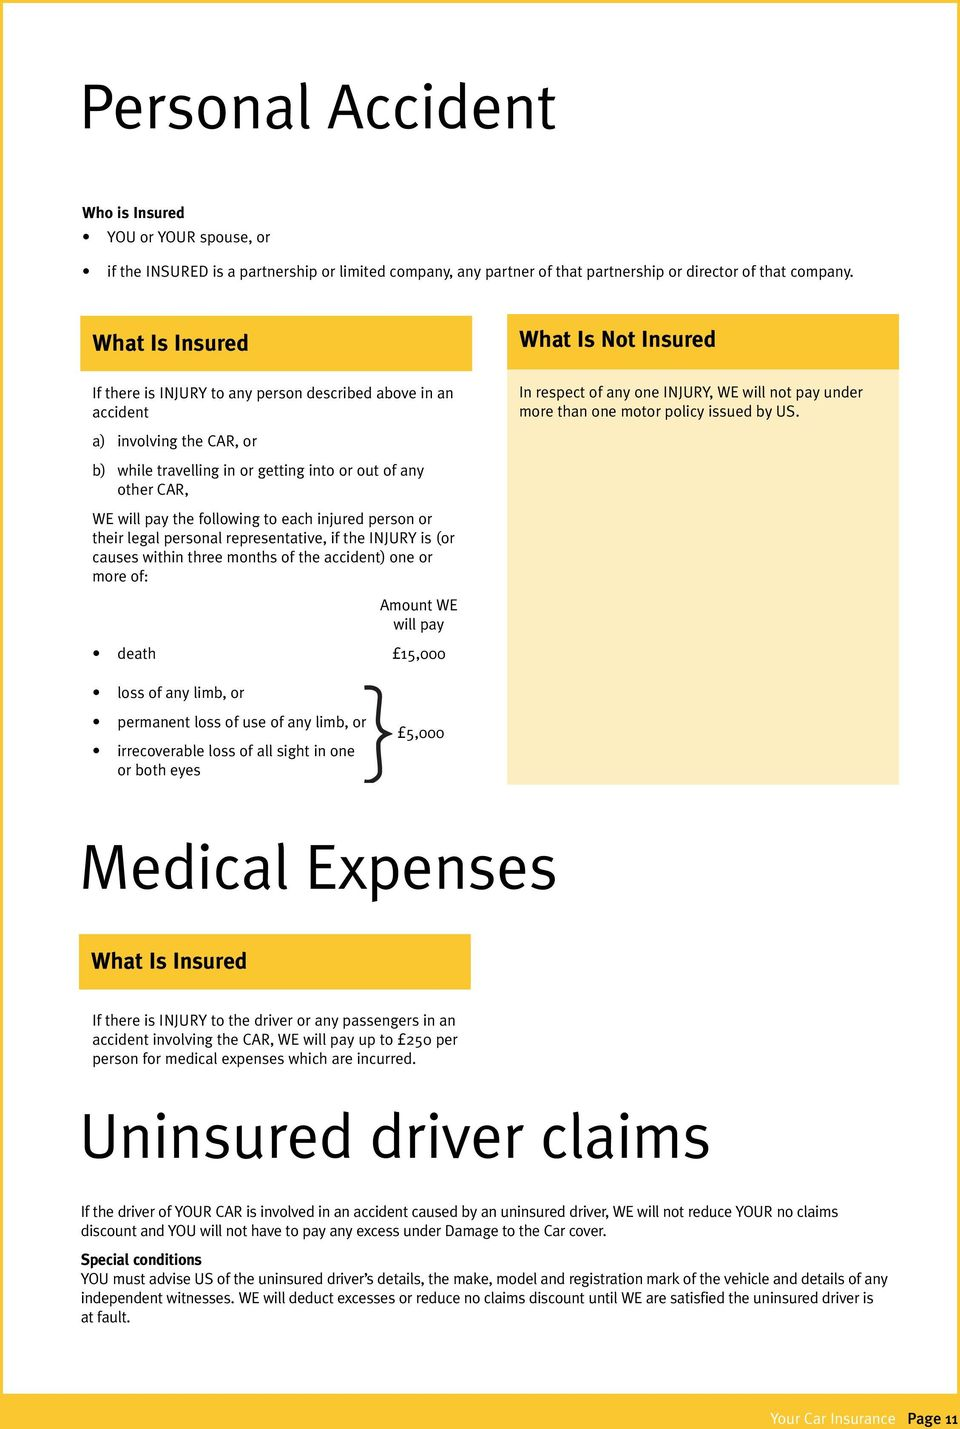 a) involving the CAR, or b) while travelling in or getting into or out of any other CAR, WE will pay the following to each injured person or their legal personal representative, if the INJURY is (or